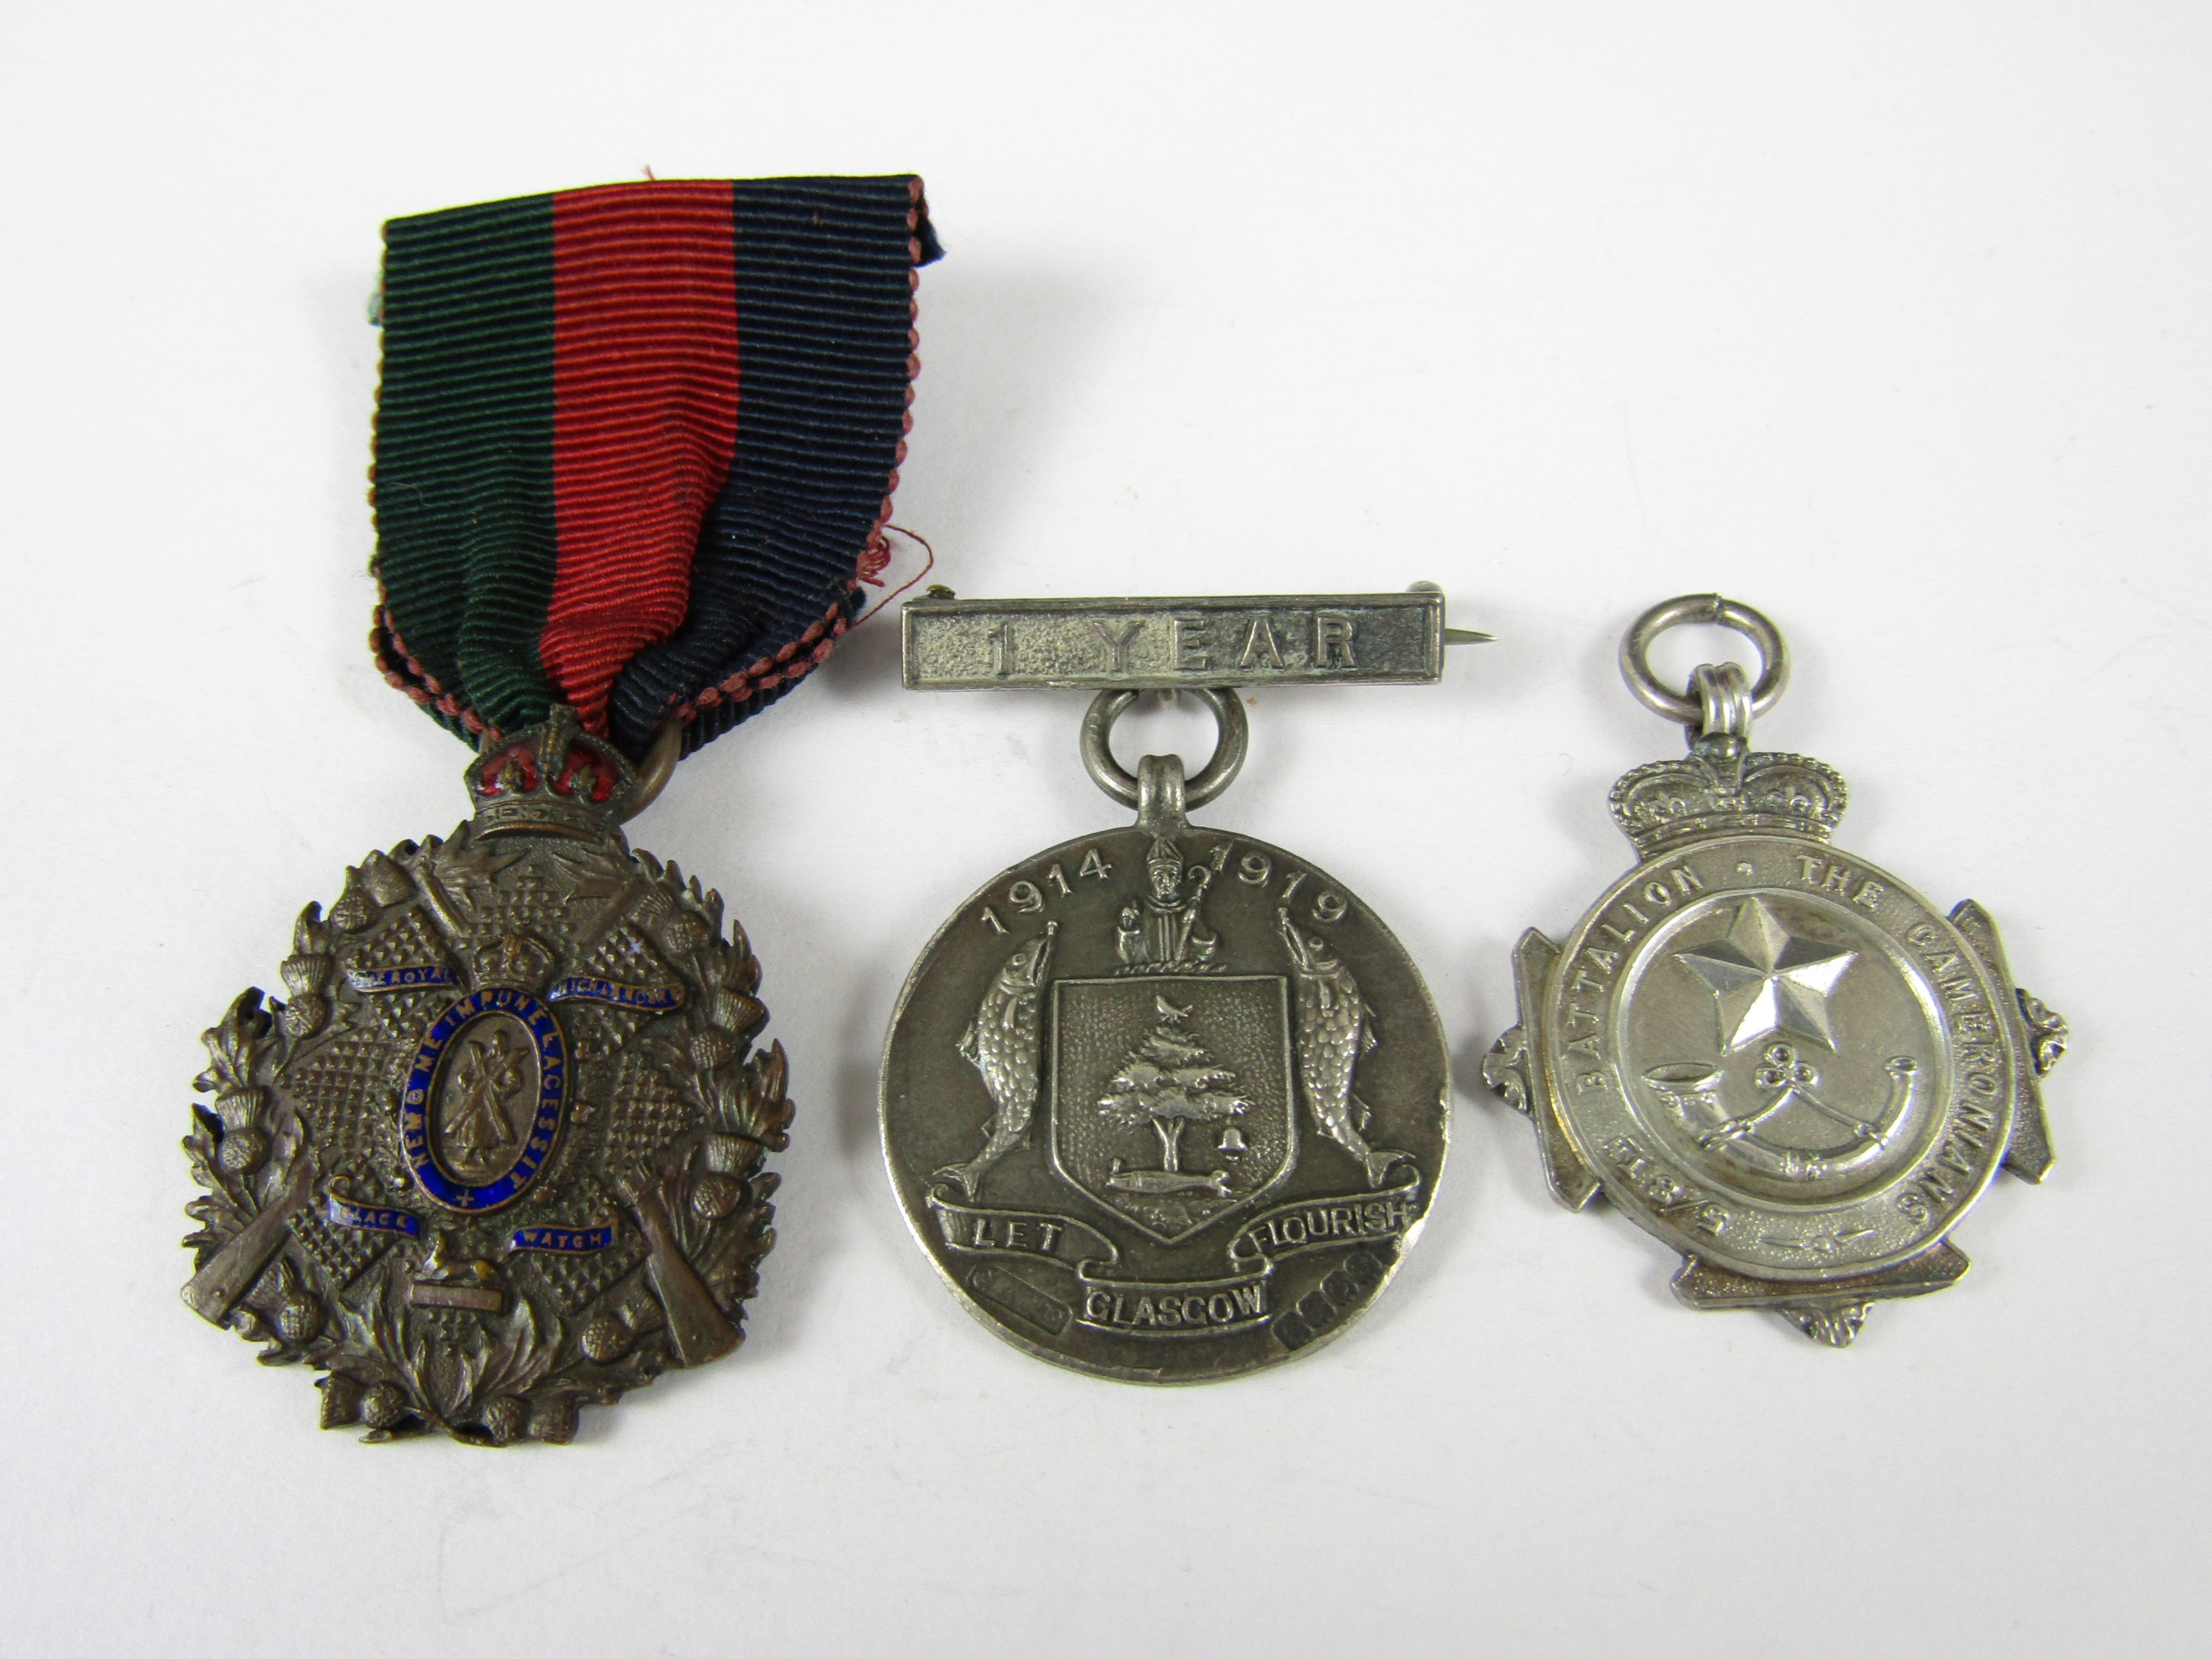 Lot 52 - A silver 5th / 8th Battalion The Cameronians fob, together with a silver Glasgow Constabulary